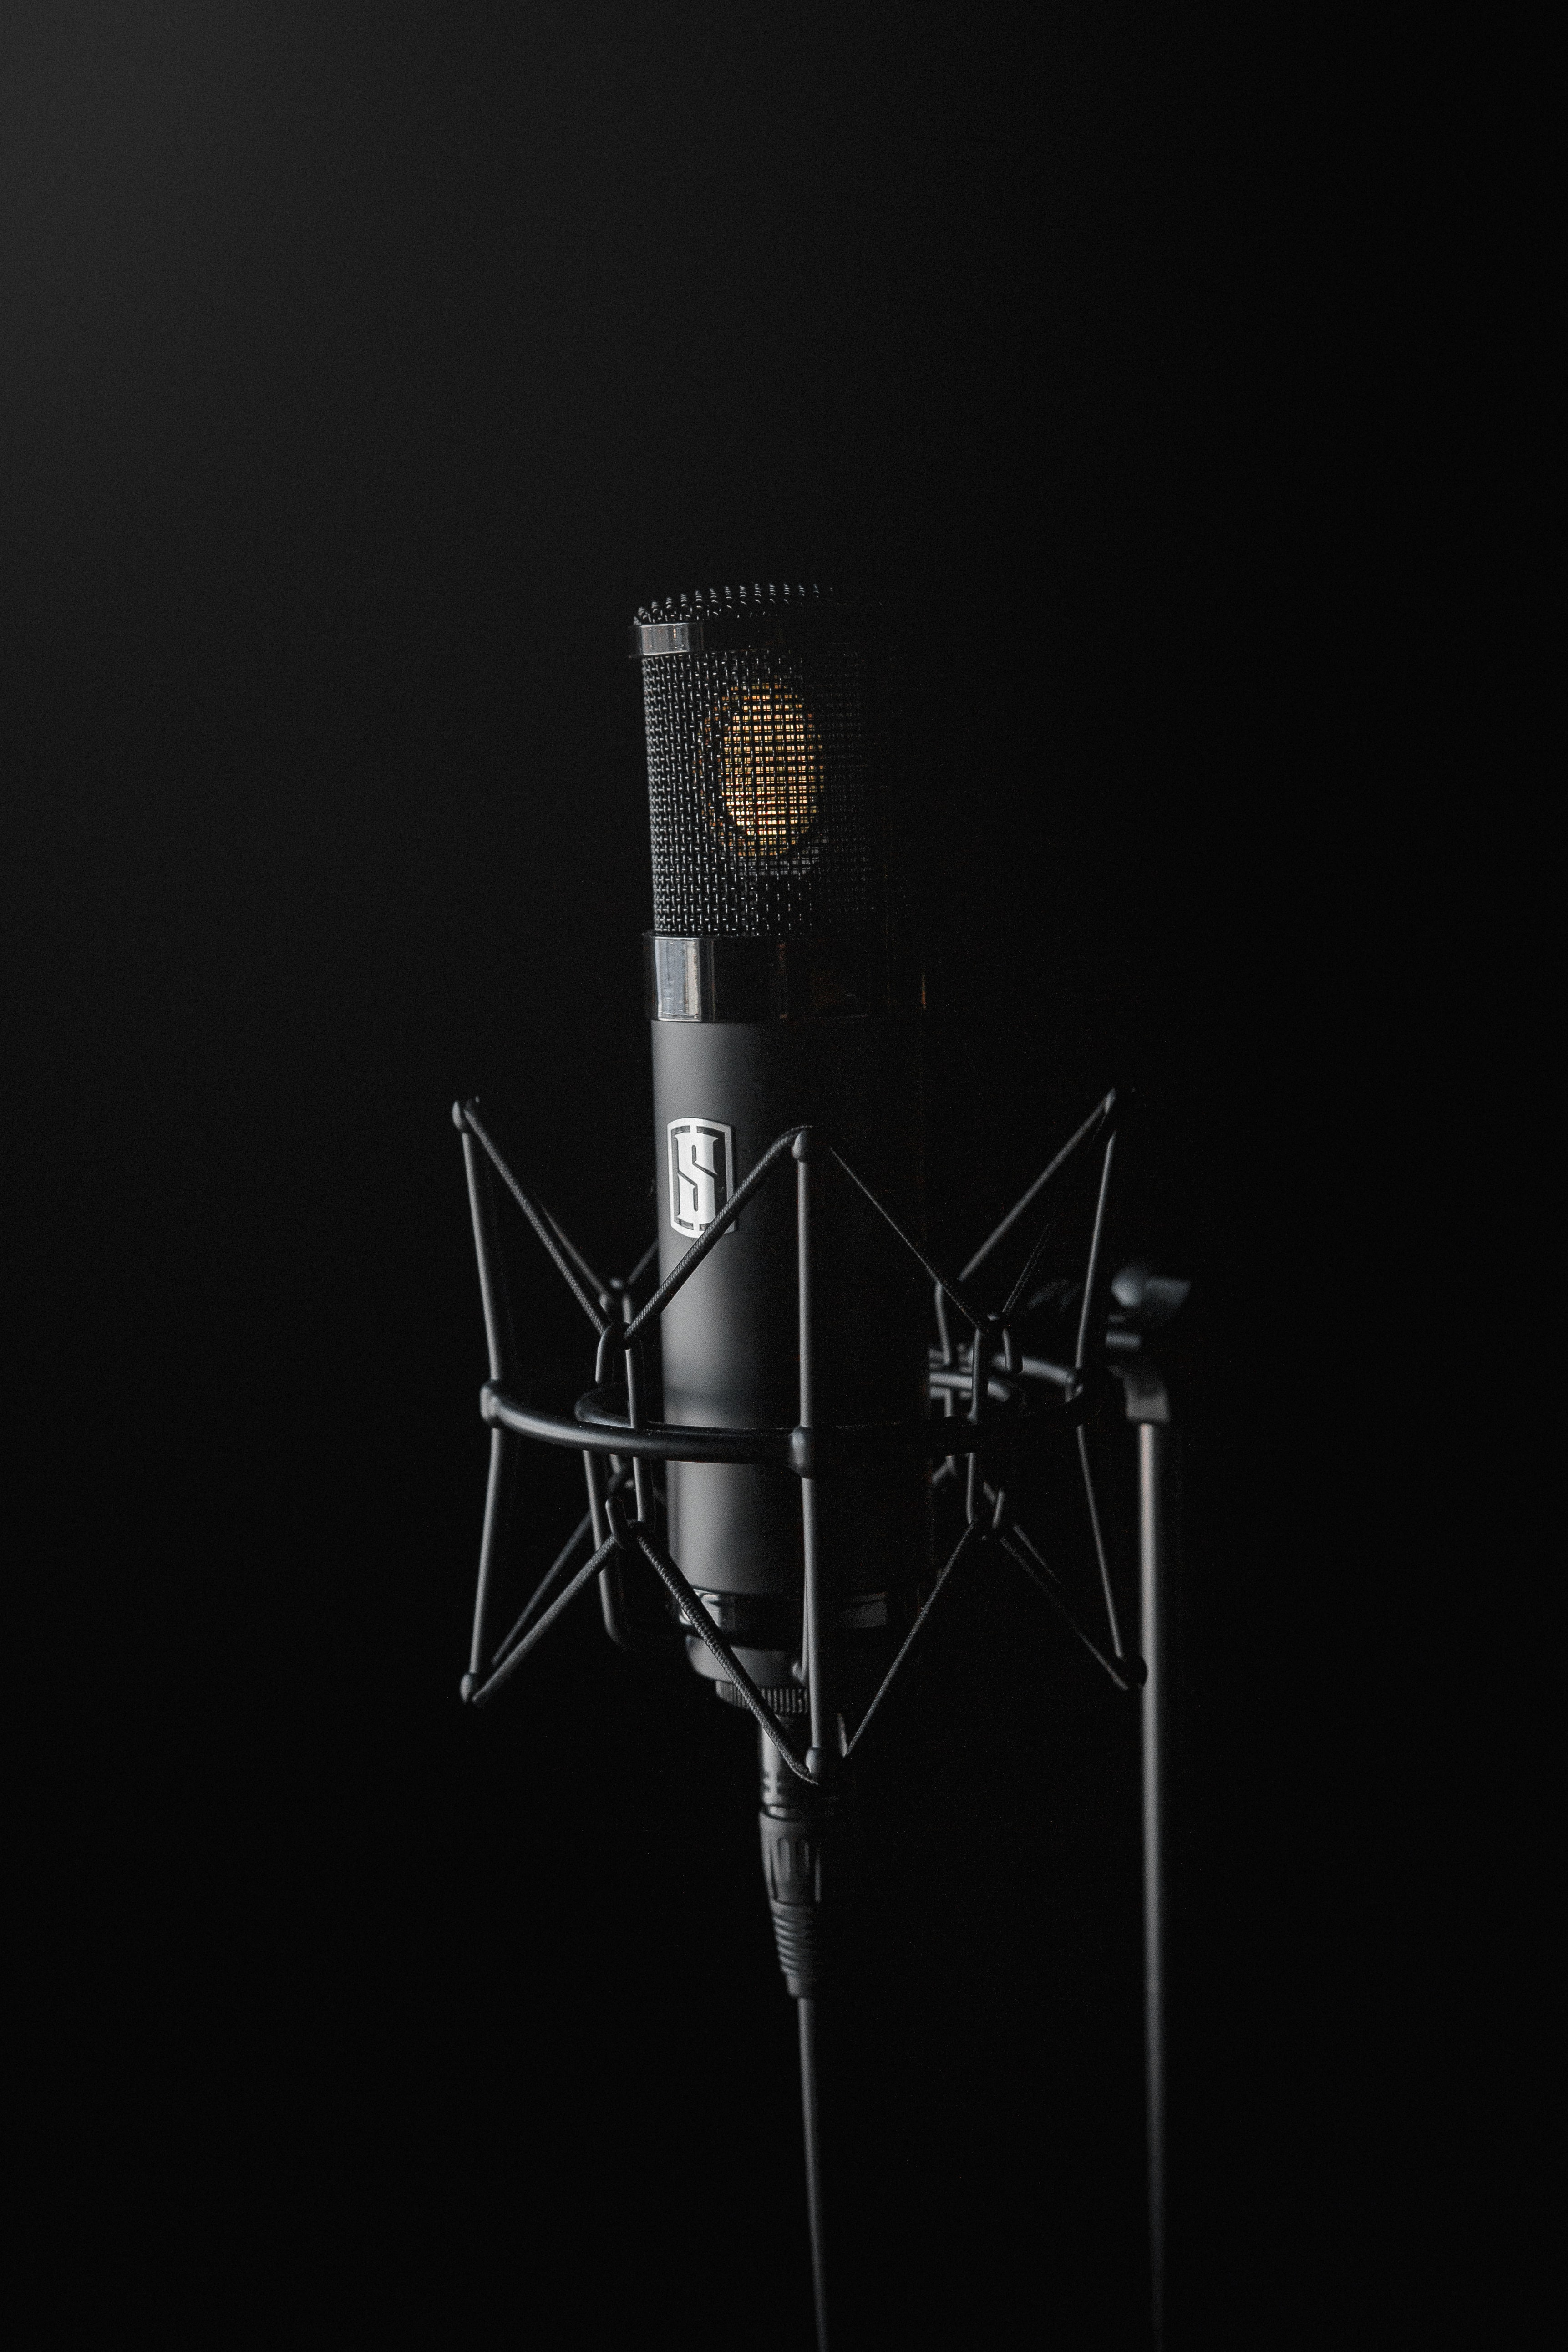 black condenser microphone on black background